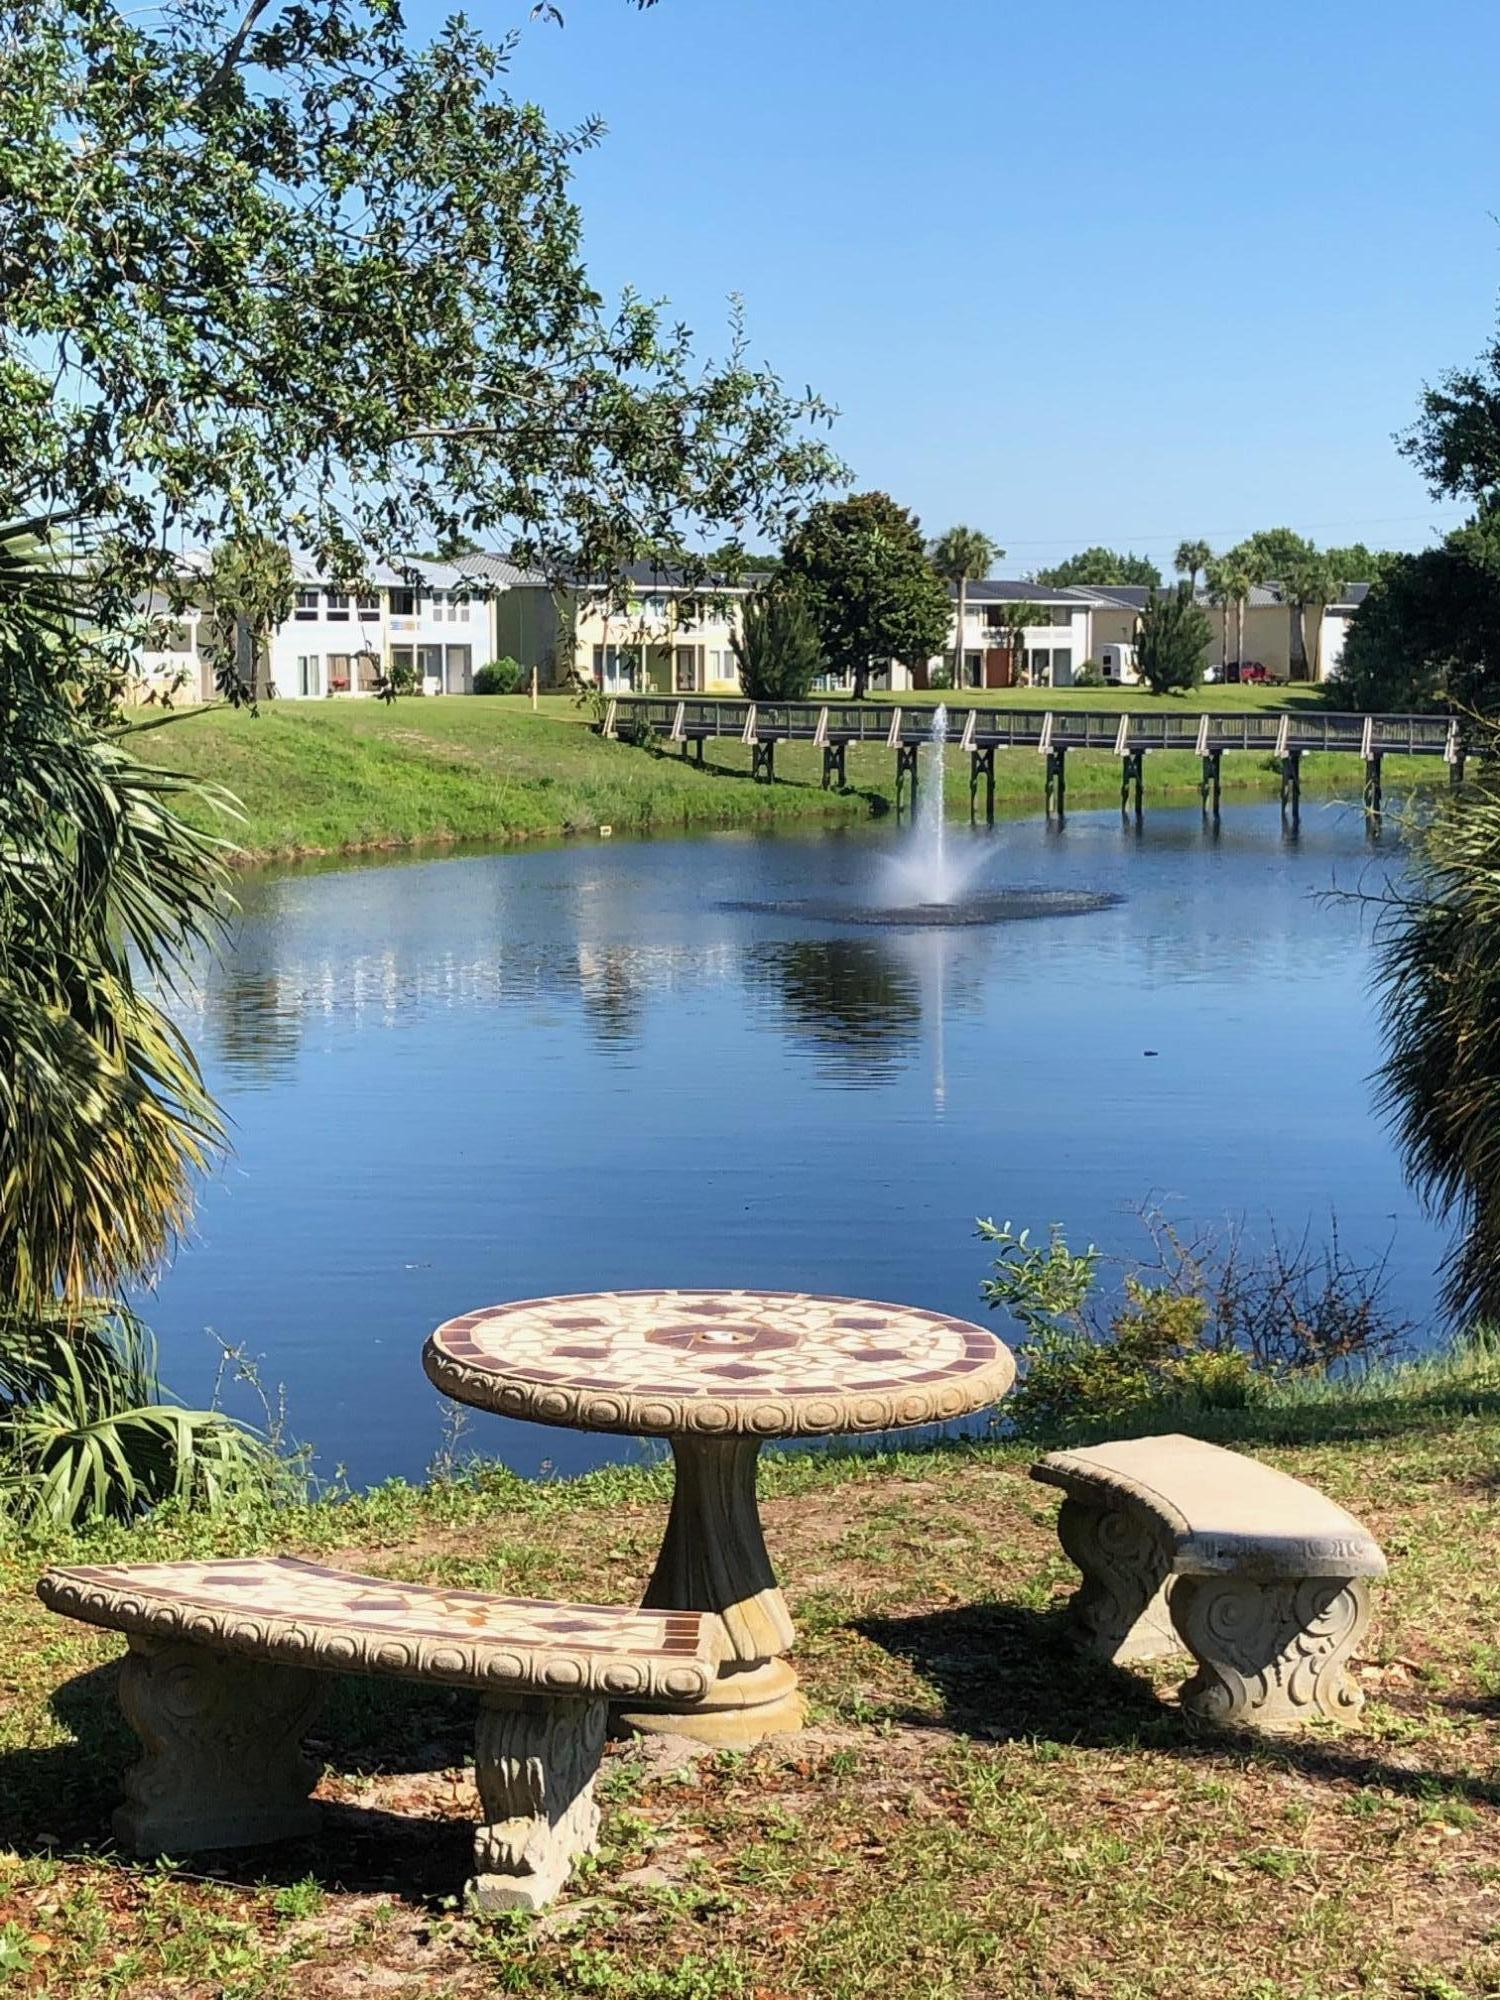 Charming one bedroom condo unit with 2 full baths.  Lovely view of the lake.  Easy access first floor.  Kitchen updated with newer appliances, cabinets, breakfast bar.  Newly painted, new A/C 2016, Amenities include: 3 pools, tennis, cable, water & wifi included in the HOA fee.  Lake for fishing.  Close to Restaurants, Entertainment & Shopping. Buyer to verify any and all measurements.